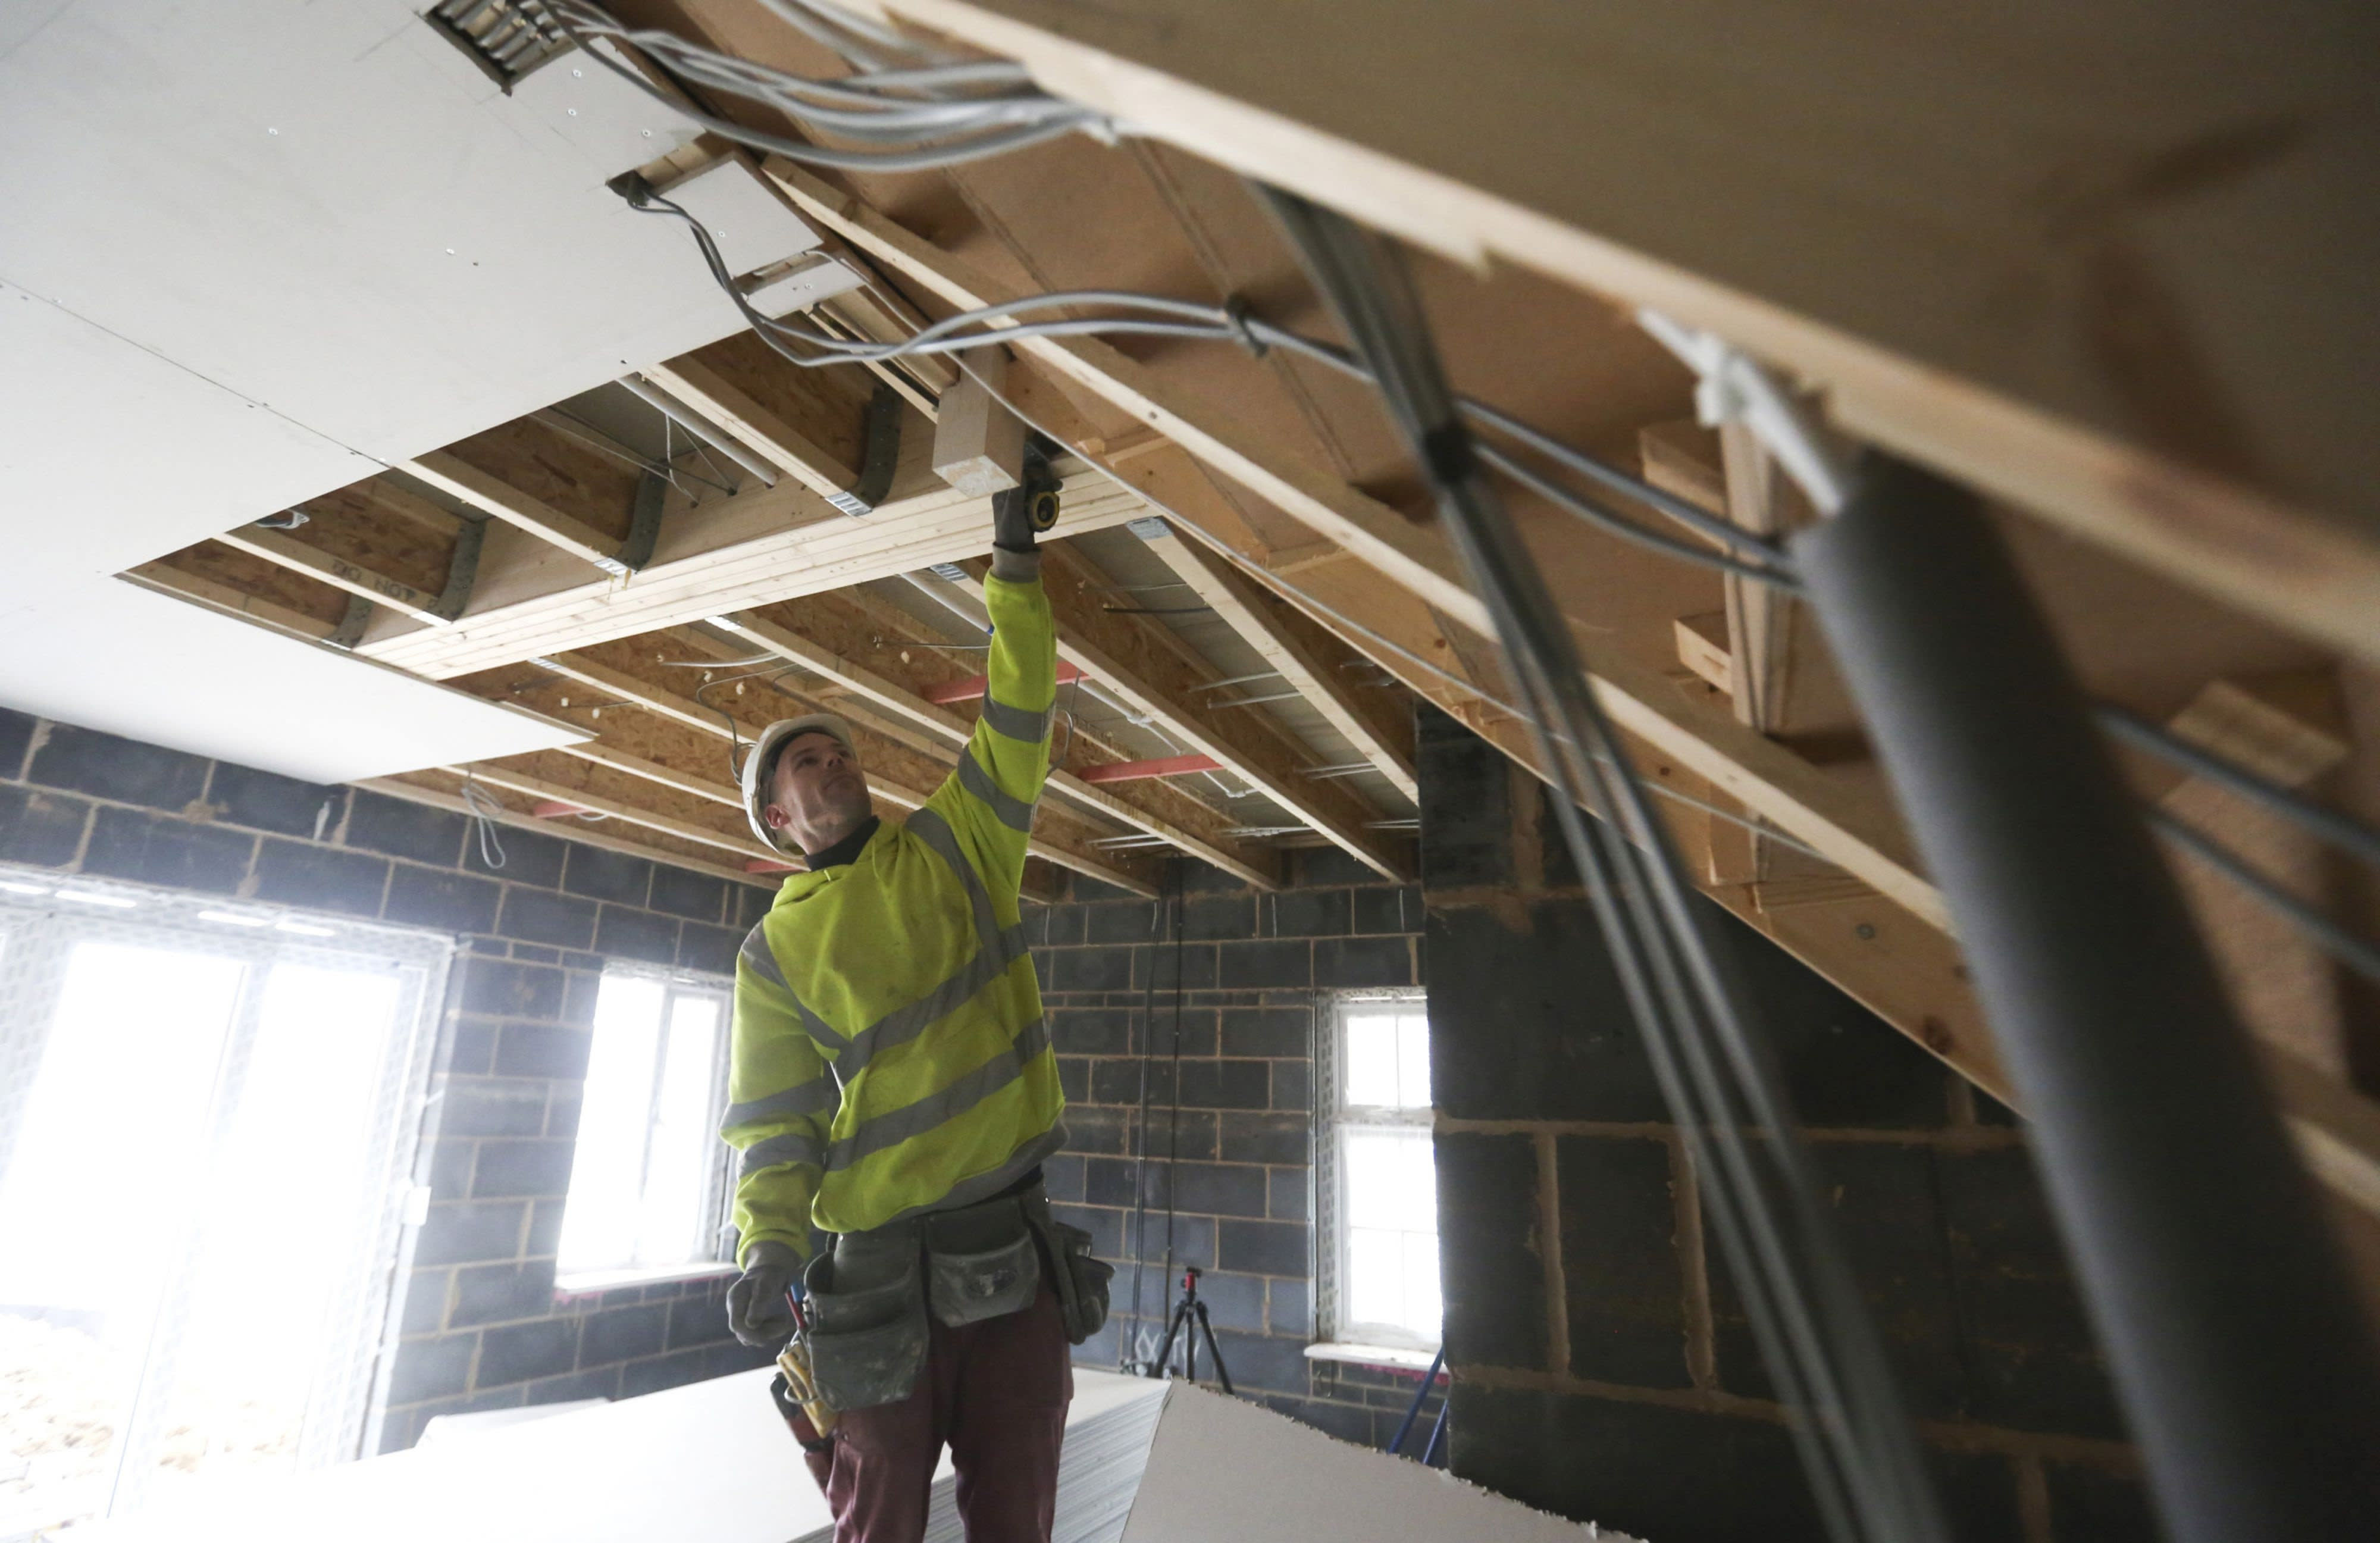 Government reviews Right to Build